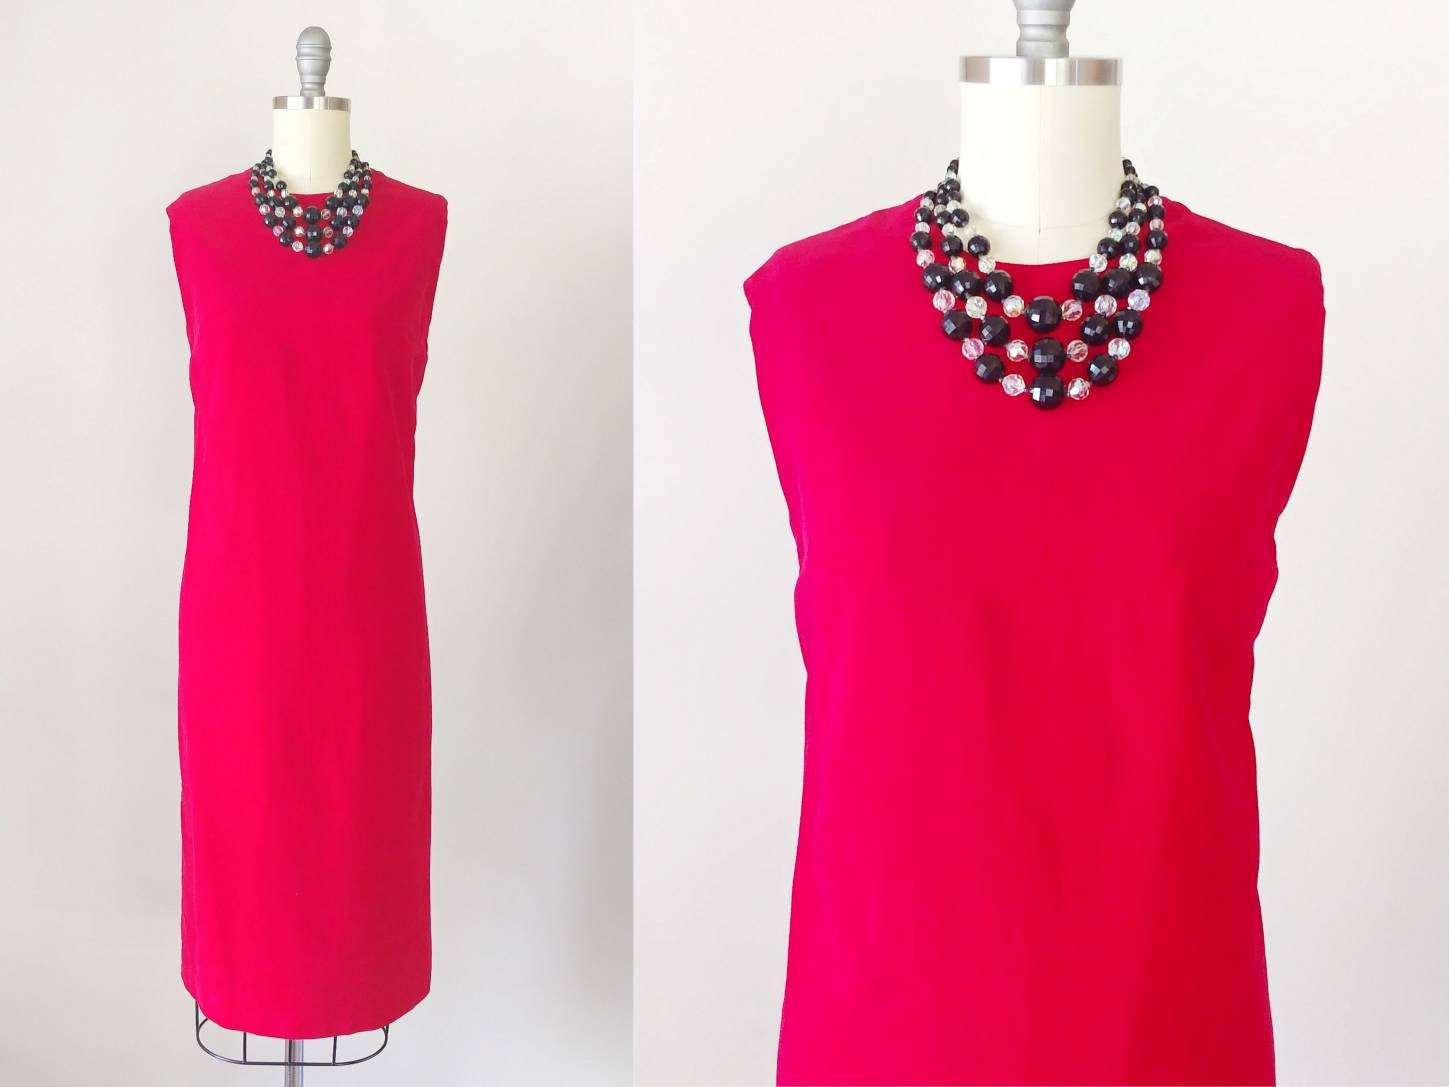 60s -70s Jewelry – Necklaces, Earrings, Rings, Bracelets 1960S Red Velour Sheath Dress  Vintage 60S Sleeveless Holiday Party Womens Clothing Xs Small $74.00 AT vintagedancer.com